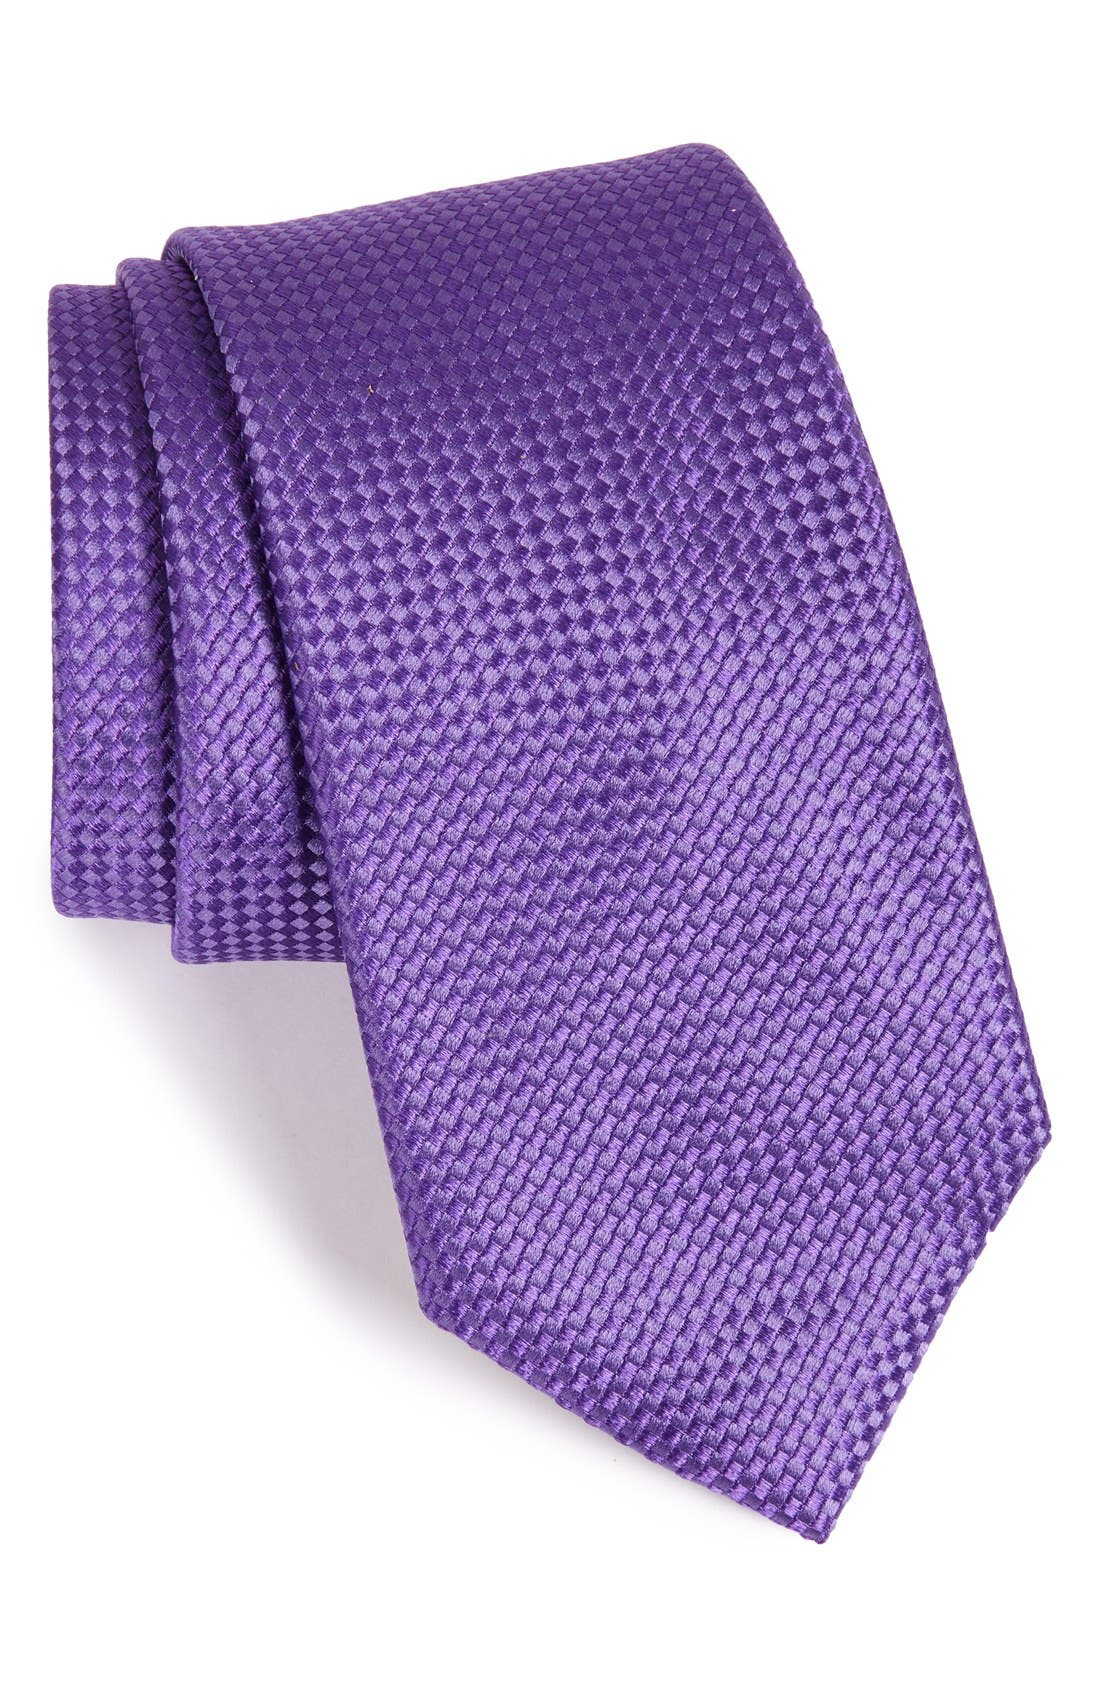 Alternate Image 1 Selected - Nordstrom Men's Shop 'Nate' Solid Silk Tie